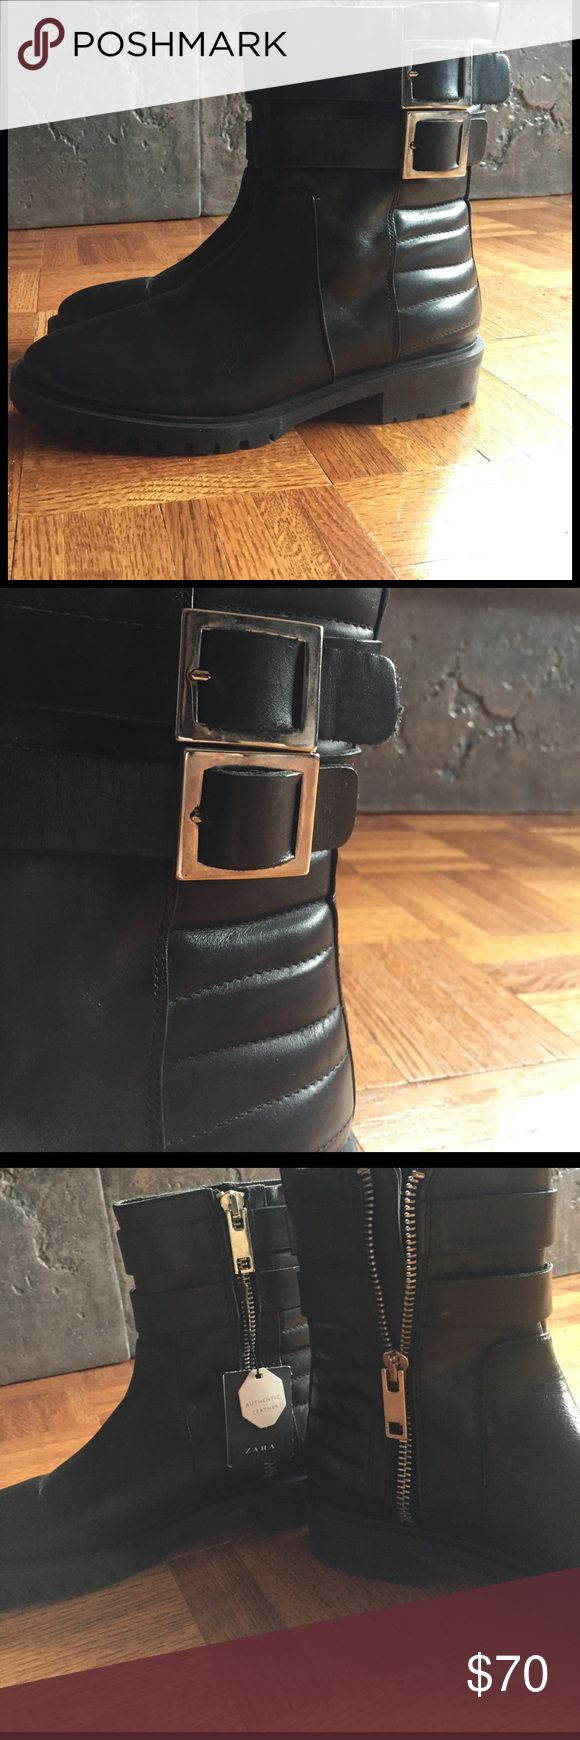 Zara combat boots Never worn with tags. Above the ankle combat boots. Authentic leather. Zara Shoes Ankle Boots & Booties